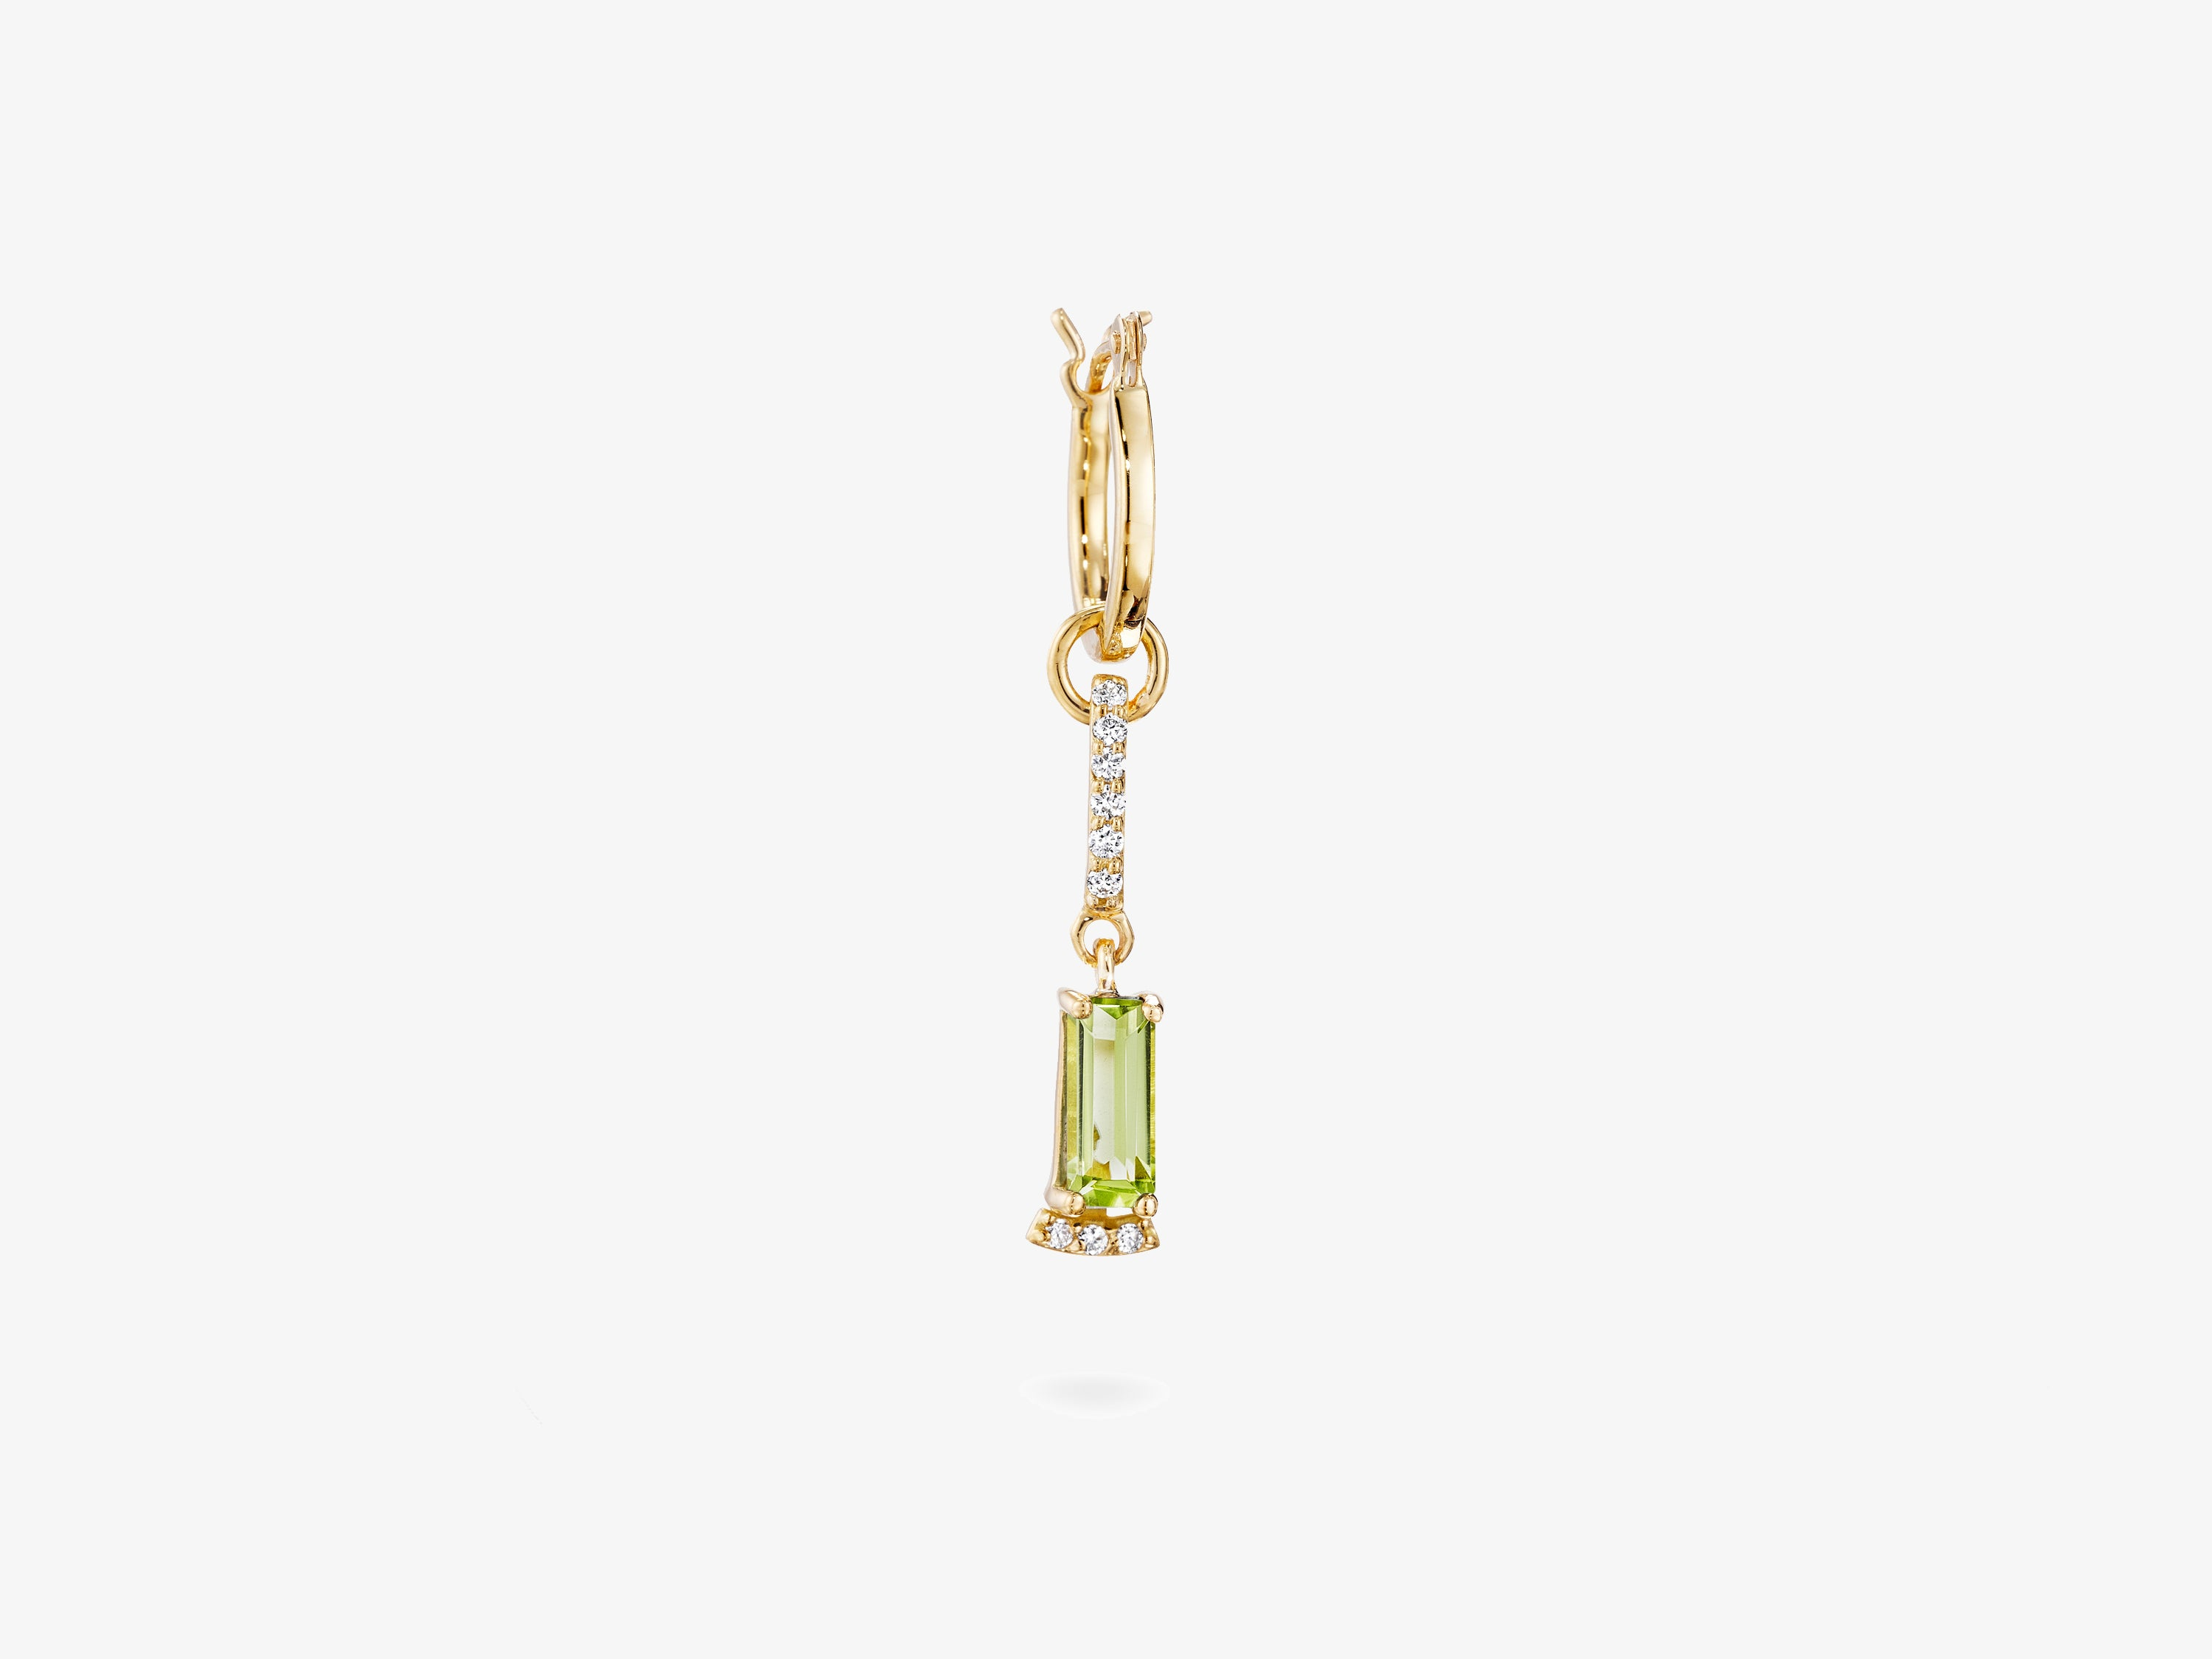 Small Modular Earring with Baguette Gemstone